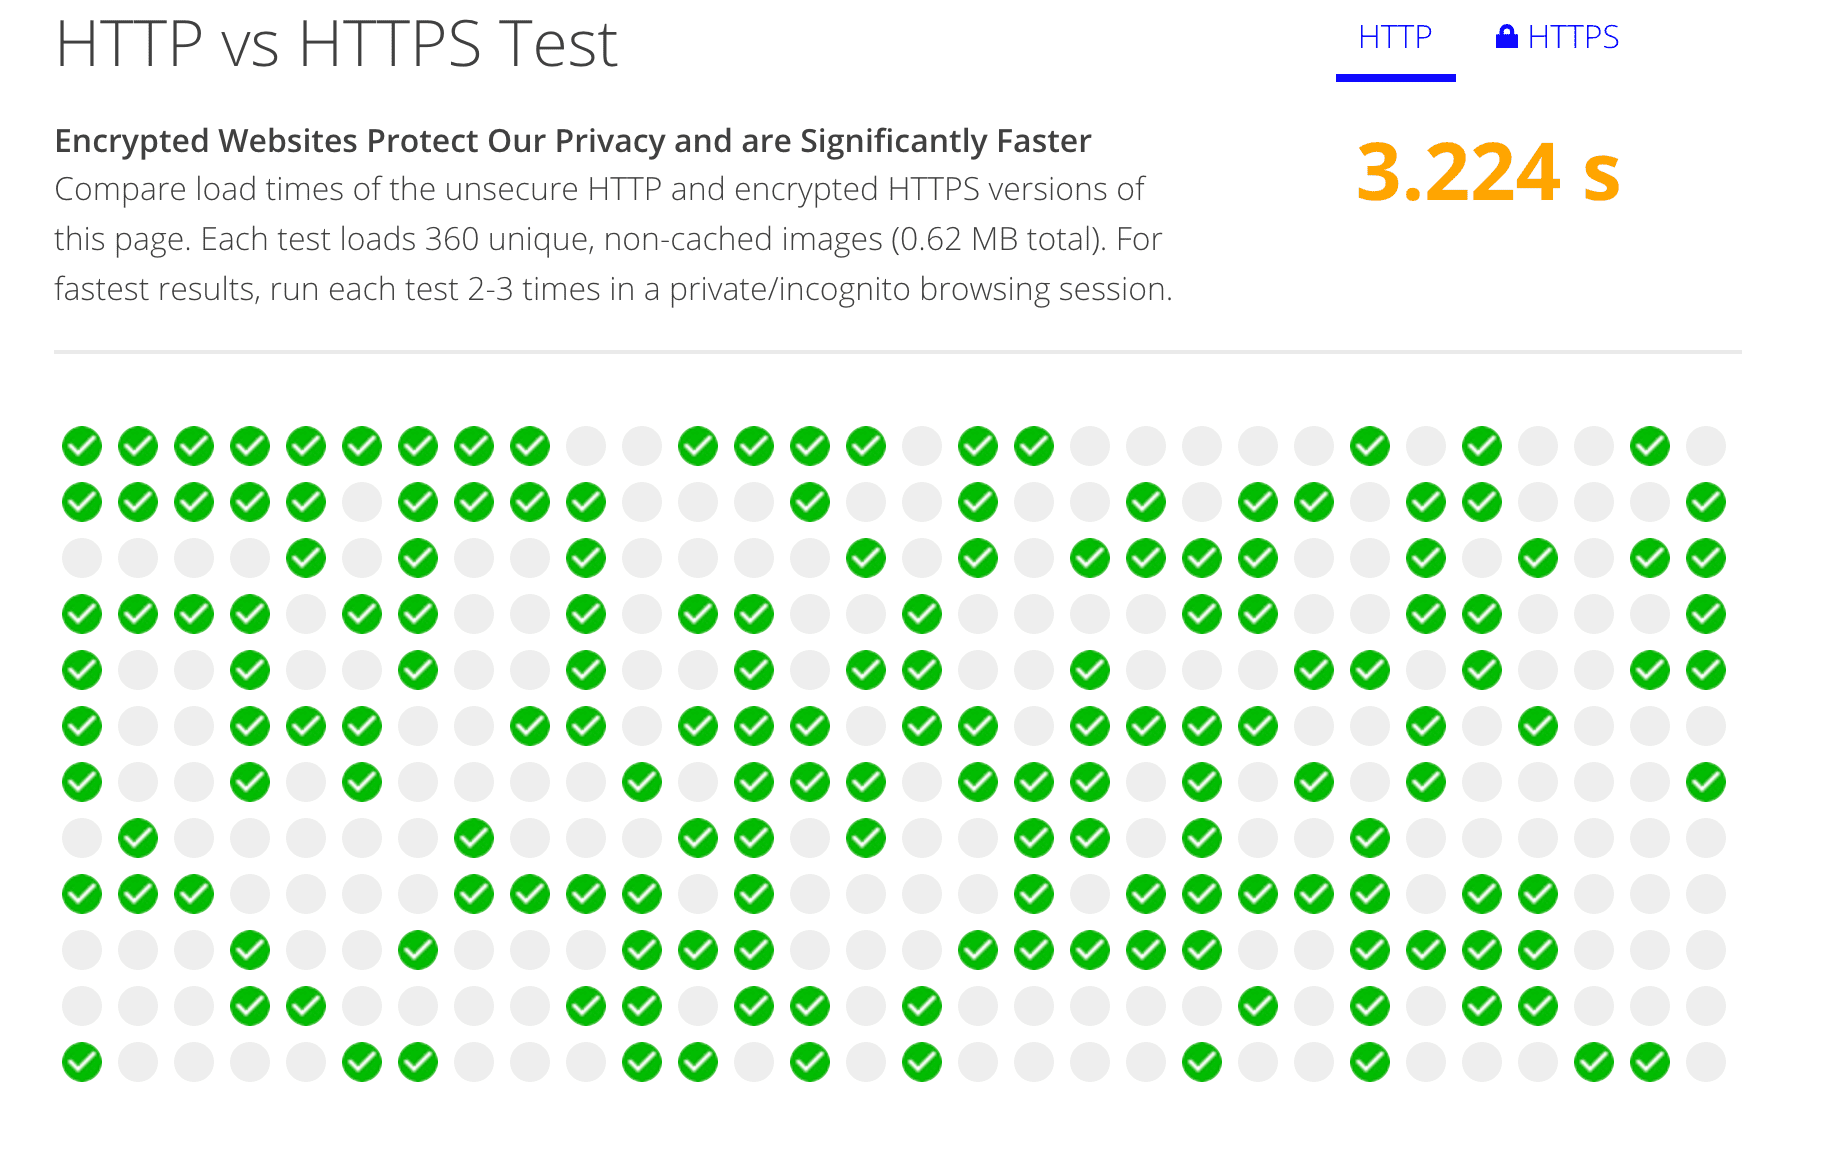 скриншот Anthum's HTTPS vs HTTPS speed test in action